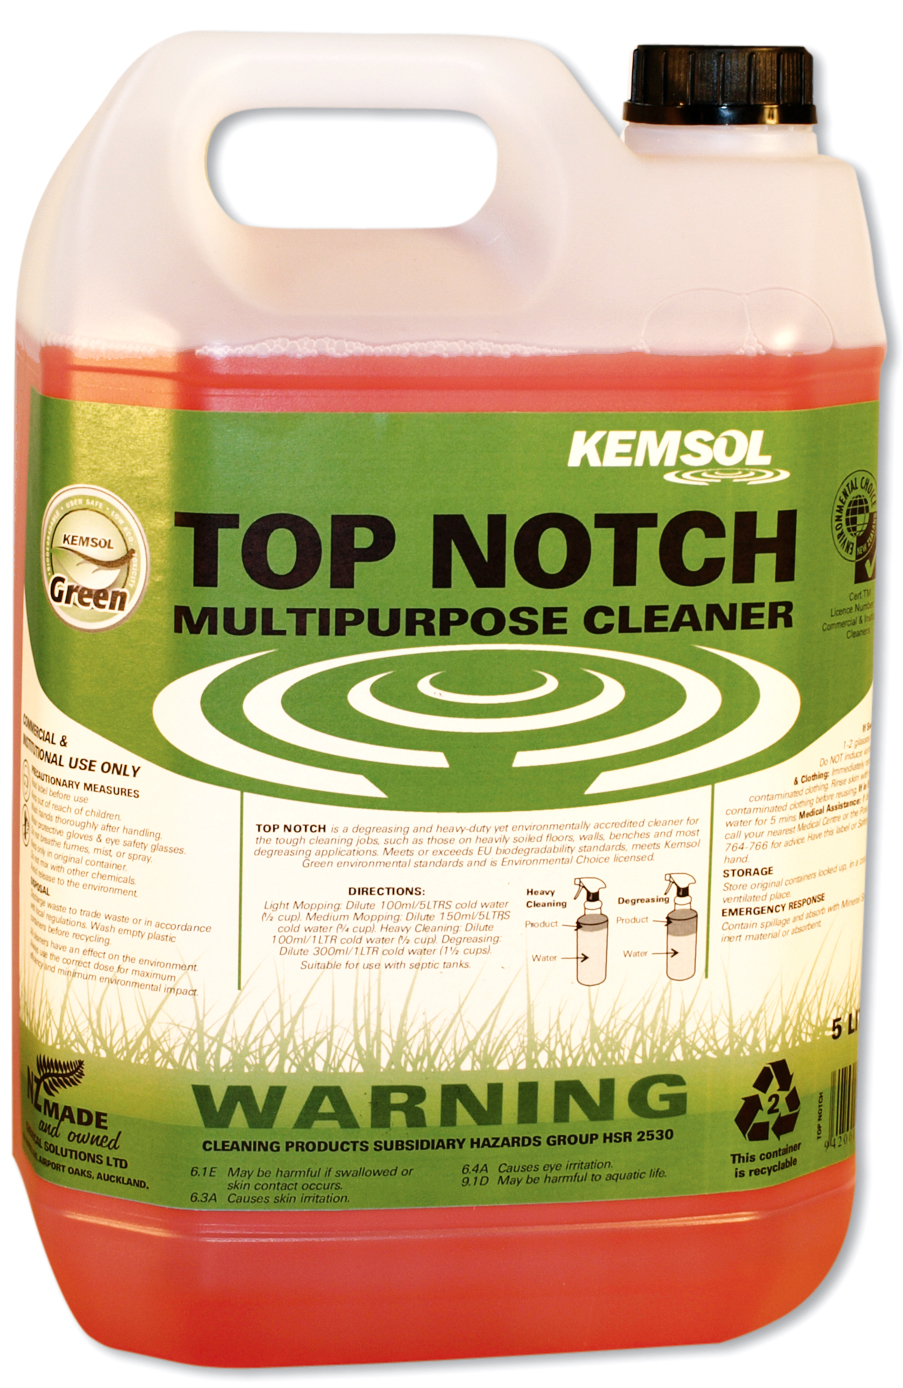 KEMSOL GREEN TOP NOTCH MULTIPURPOSE CLEANER 5Ltr